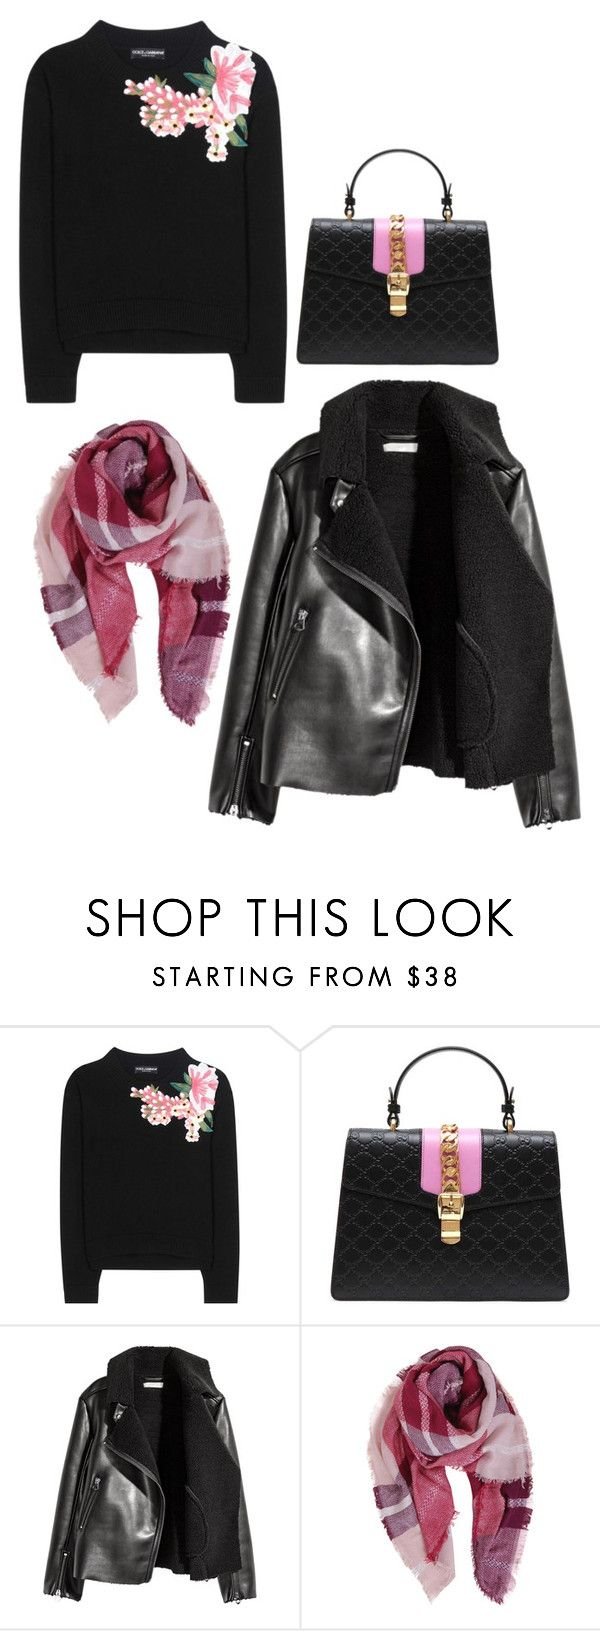 """Accessories"" by carlafashion-246 ❤ liked on Polyvore featuring Dolce&Gabbana, Gucci and Humble Chic"